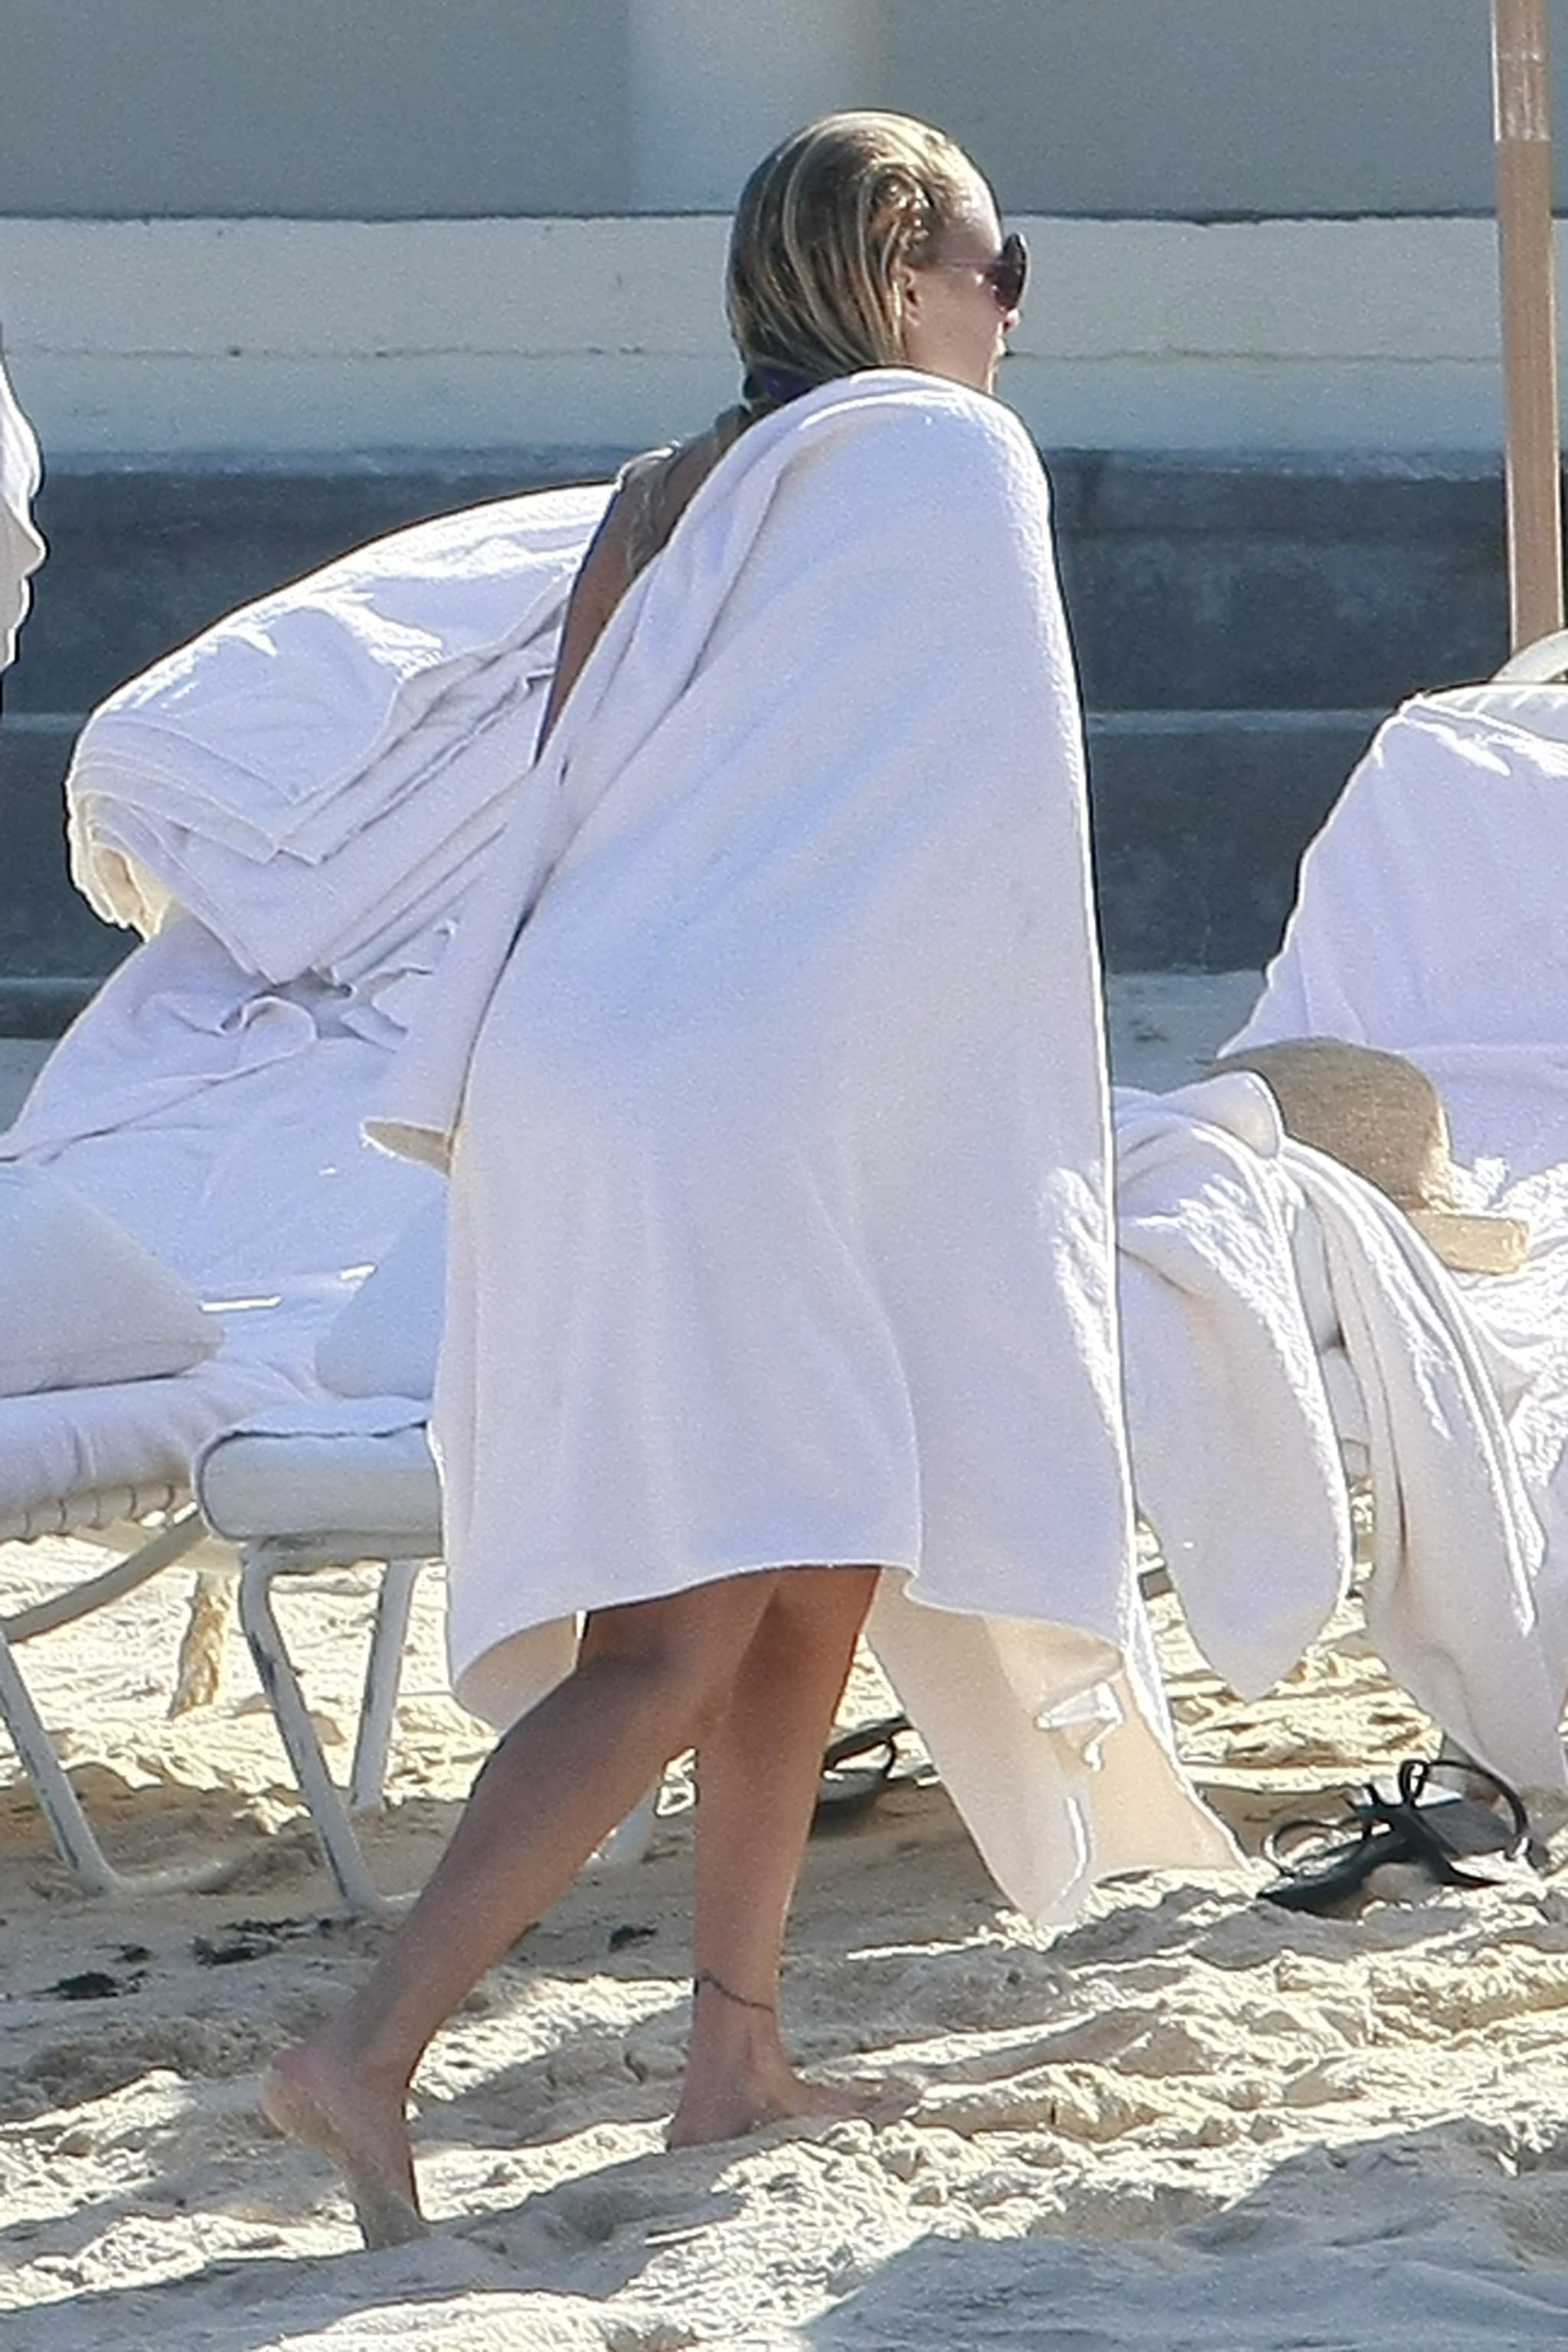 Nicole Richie warmed up in a towel.